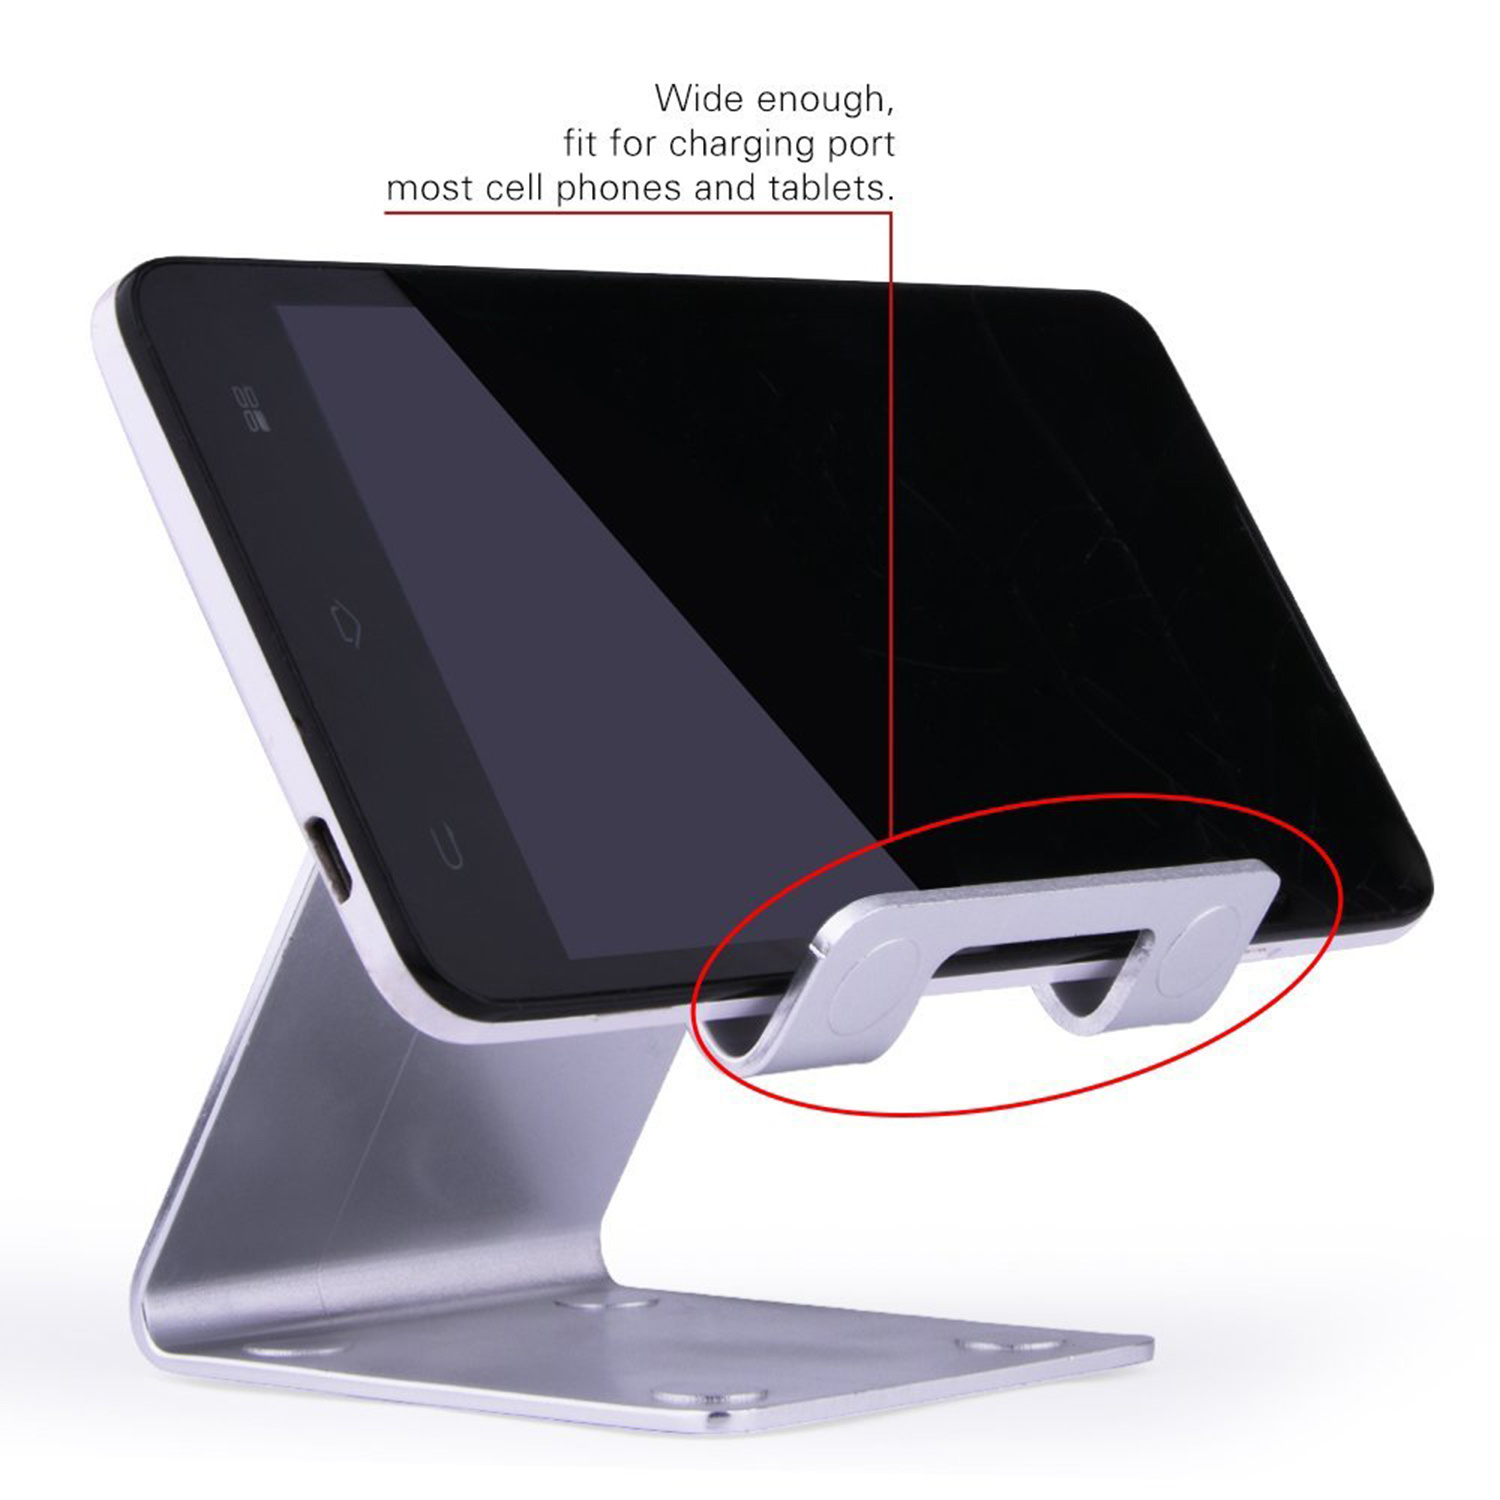 Iphone 8 Cell Phone Stand Holder For Switch Android Smartphone Charging Desk